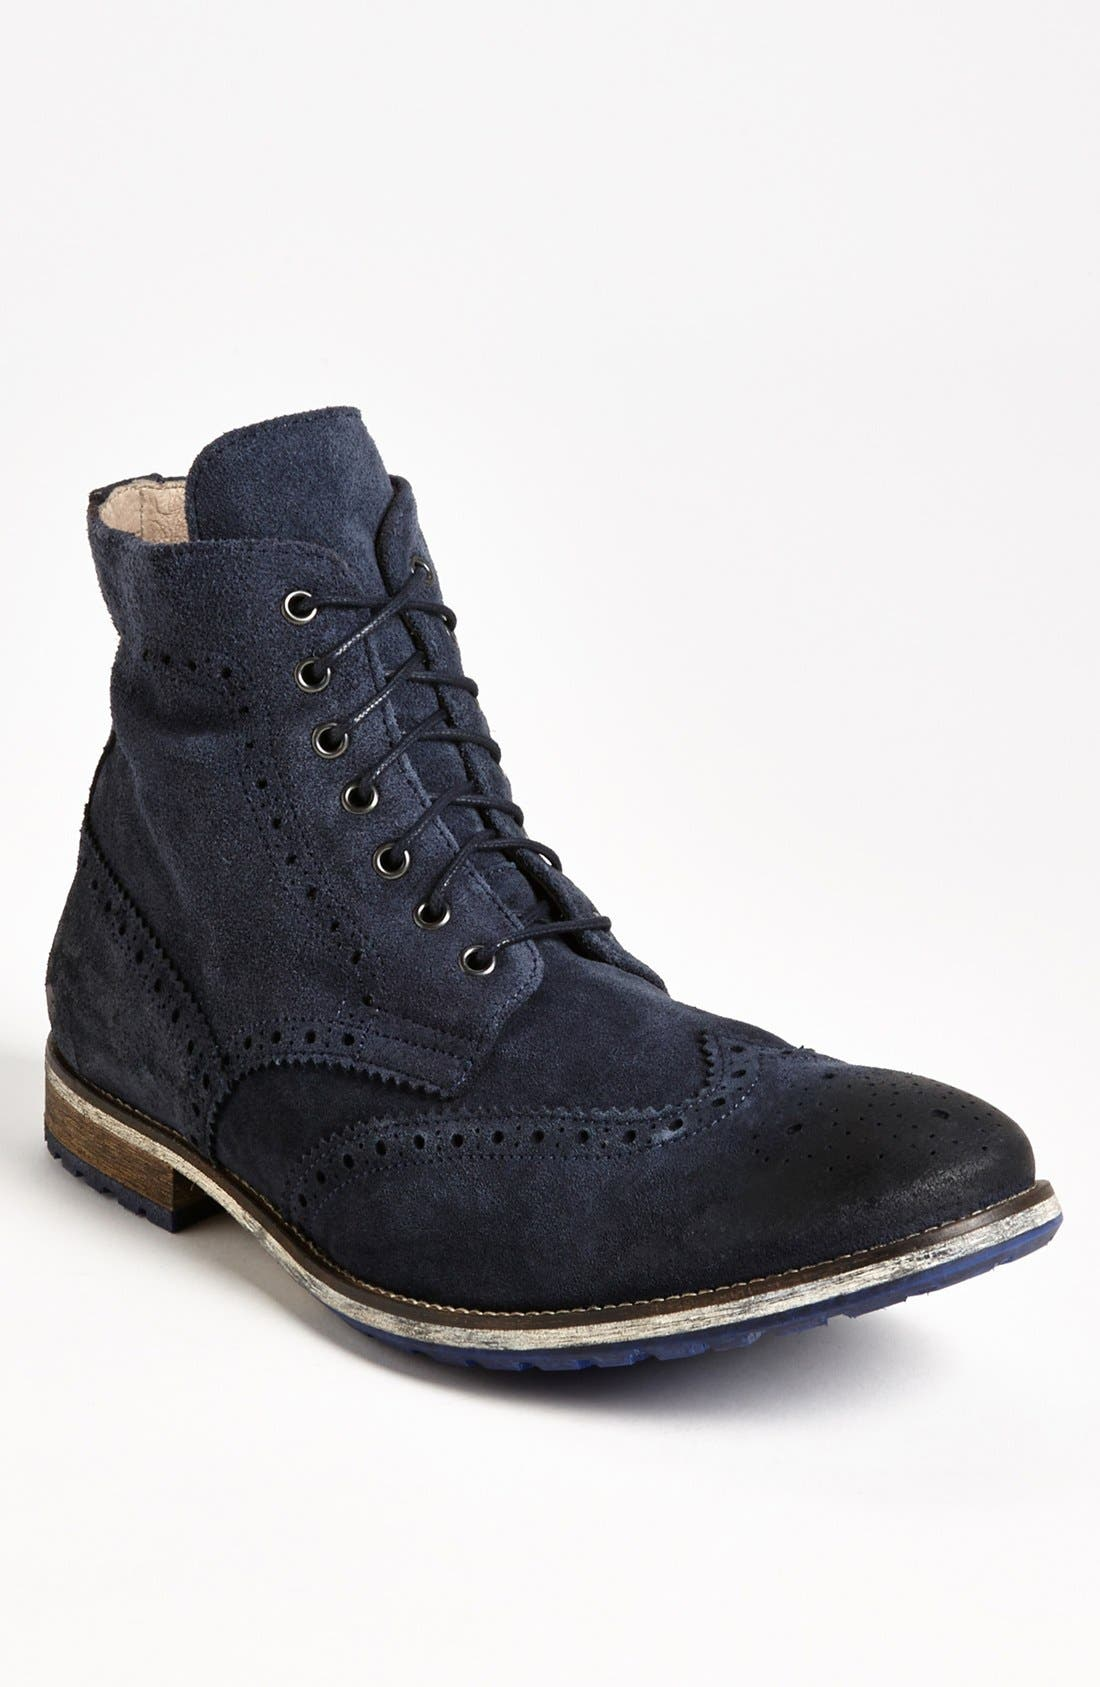 Alternate Image 1 Selected - Rogue 'Redford' Wingtip Boot